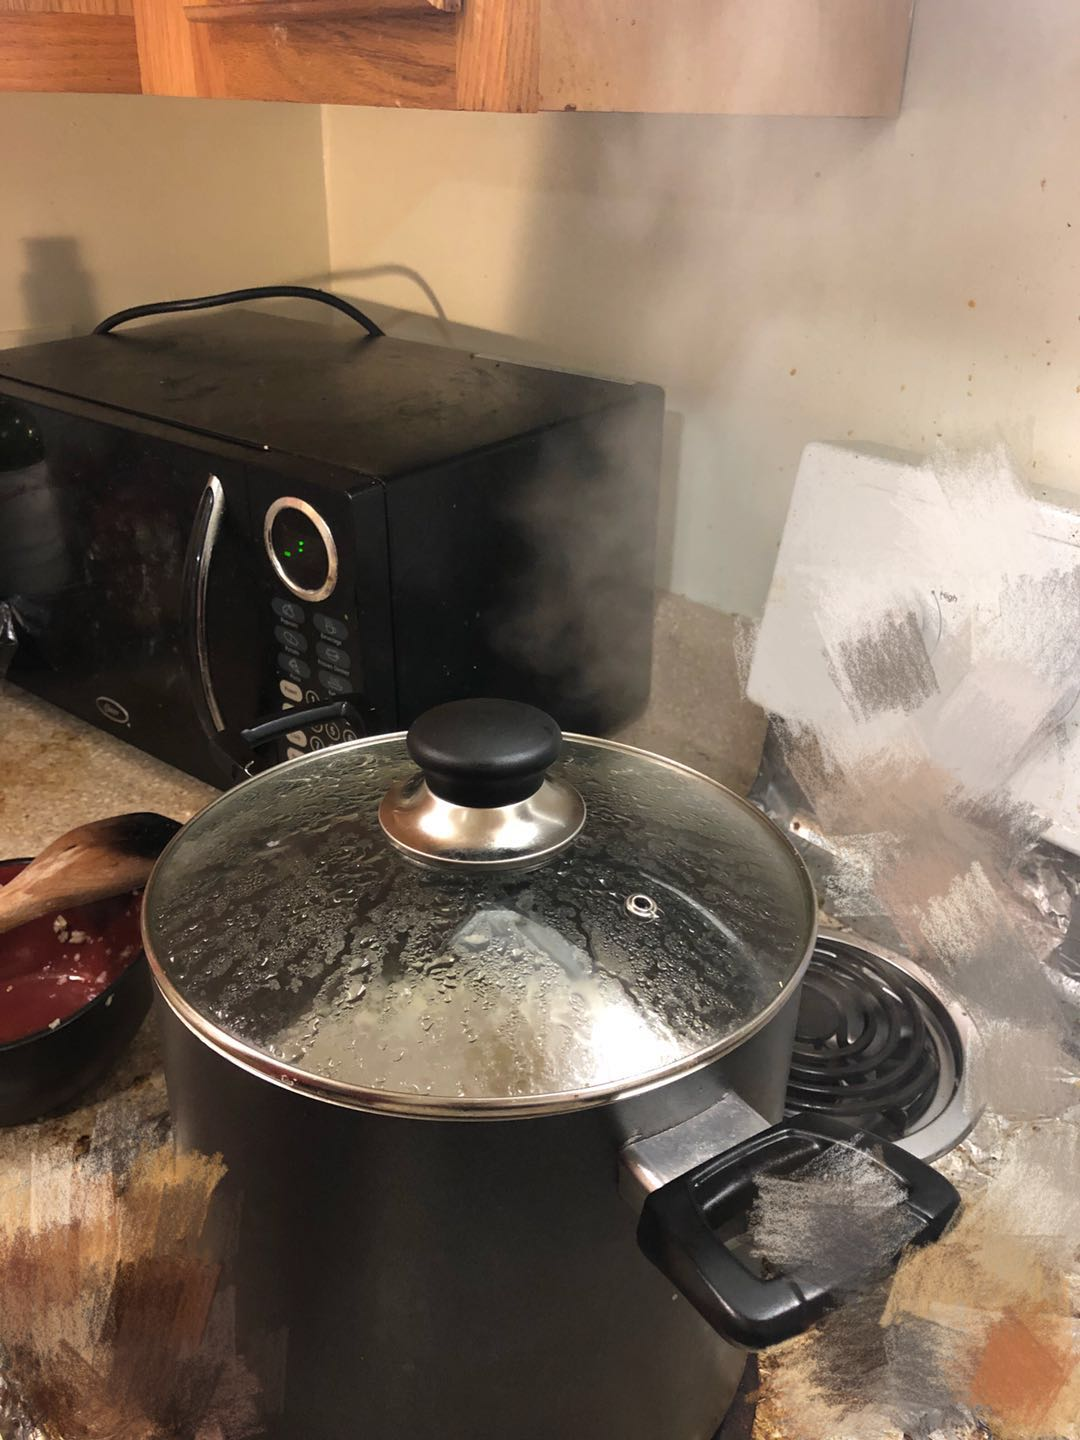 Picture of Cooking Procedure - Wait and Watch